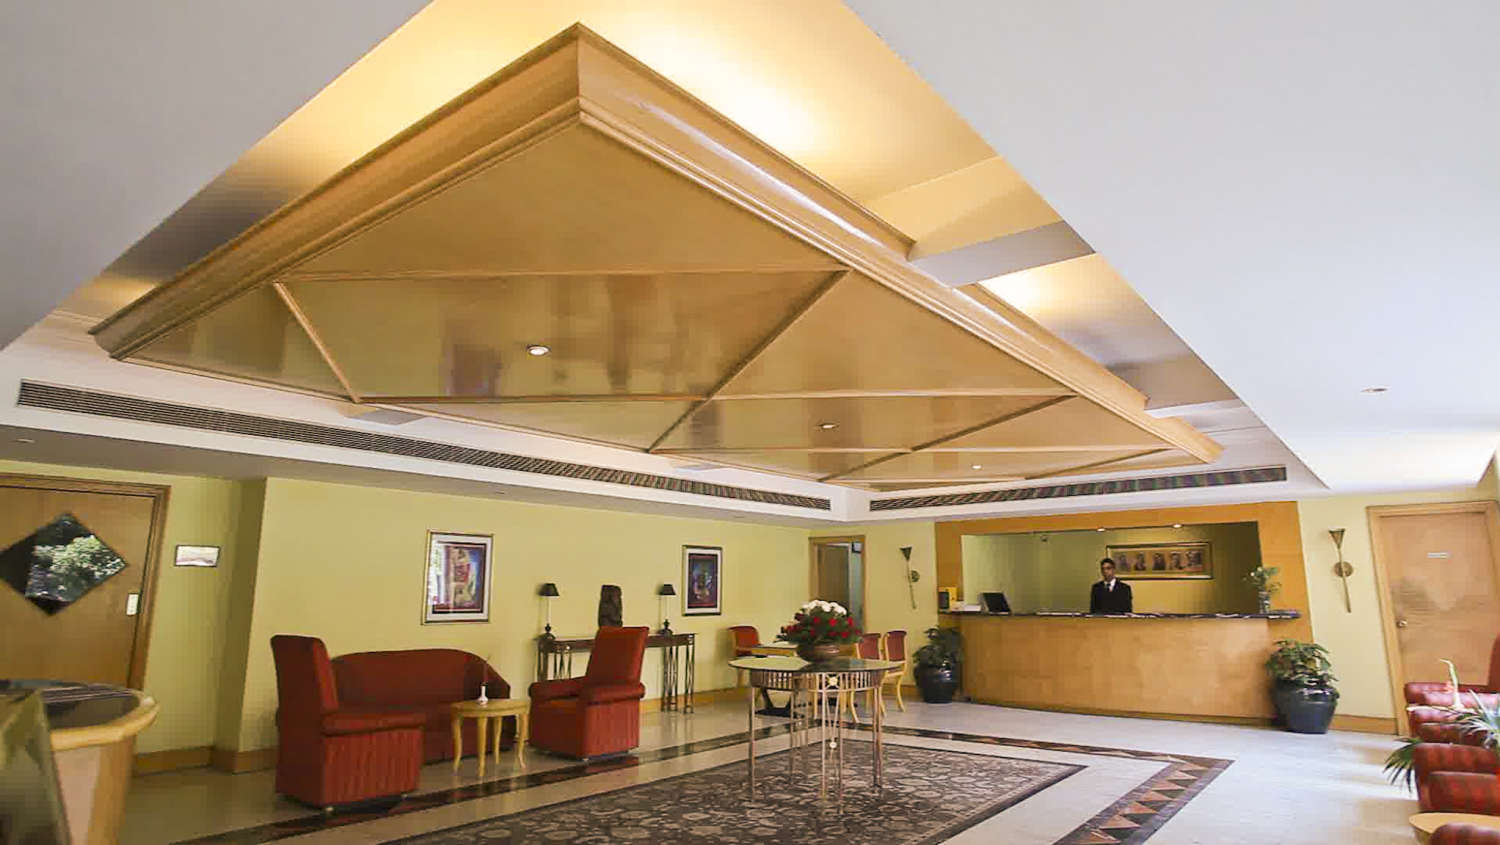 Hotel Ritz Plaza | Amritsar Hotels | Hotels near Golden Temple